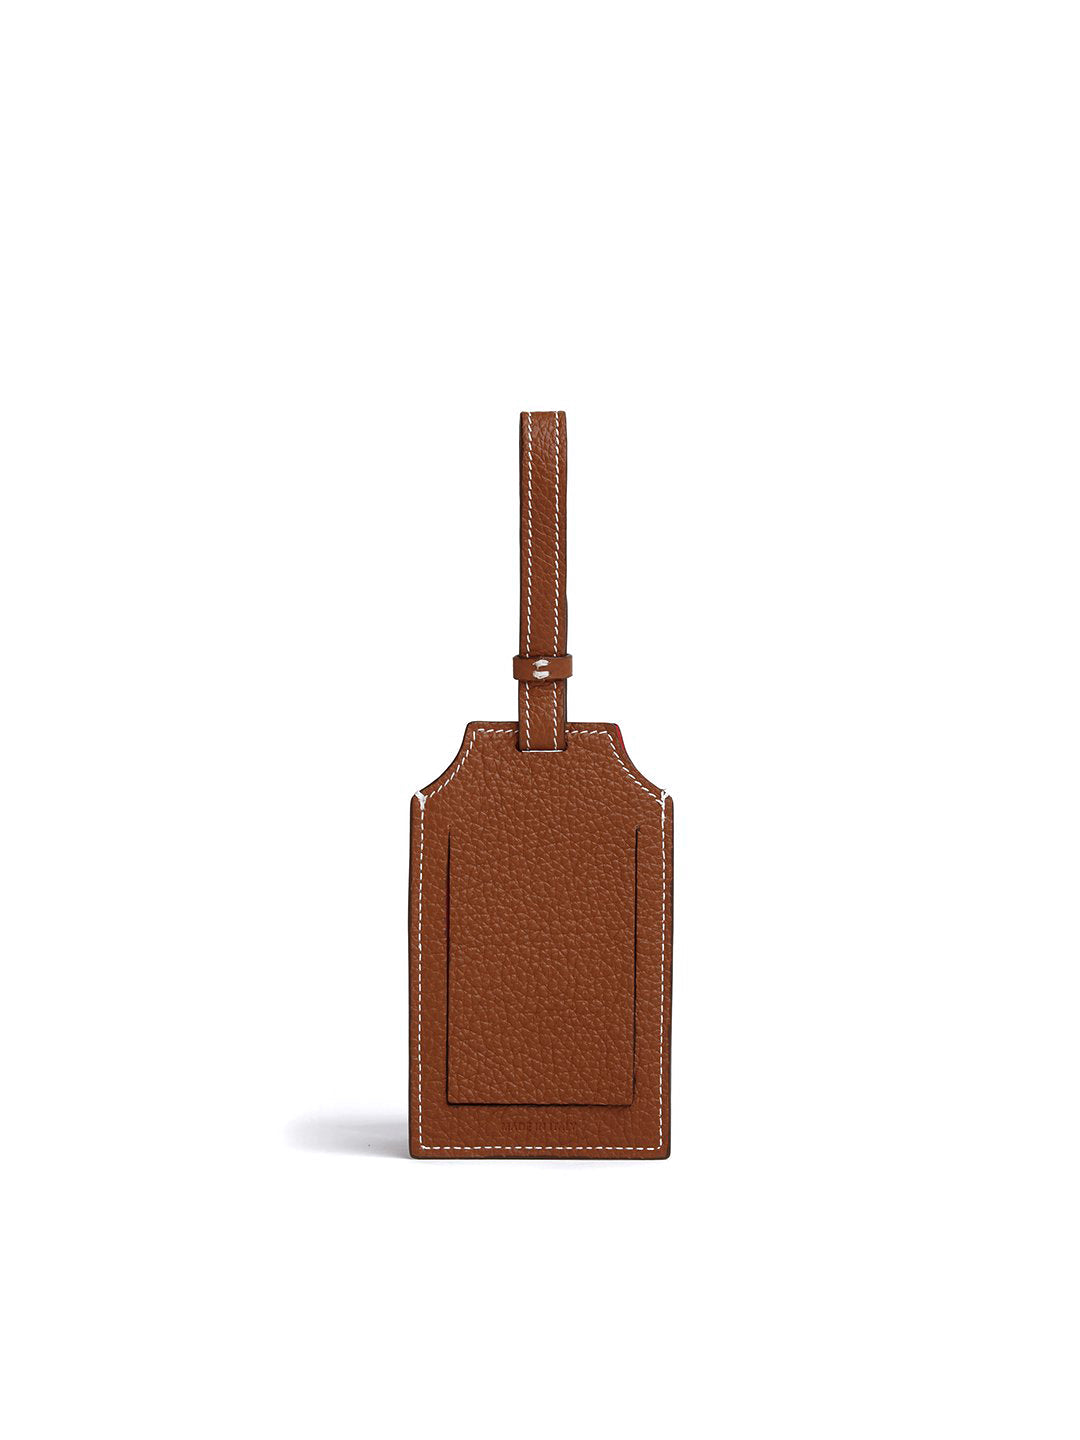 Carey Leather Luggage Tag